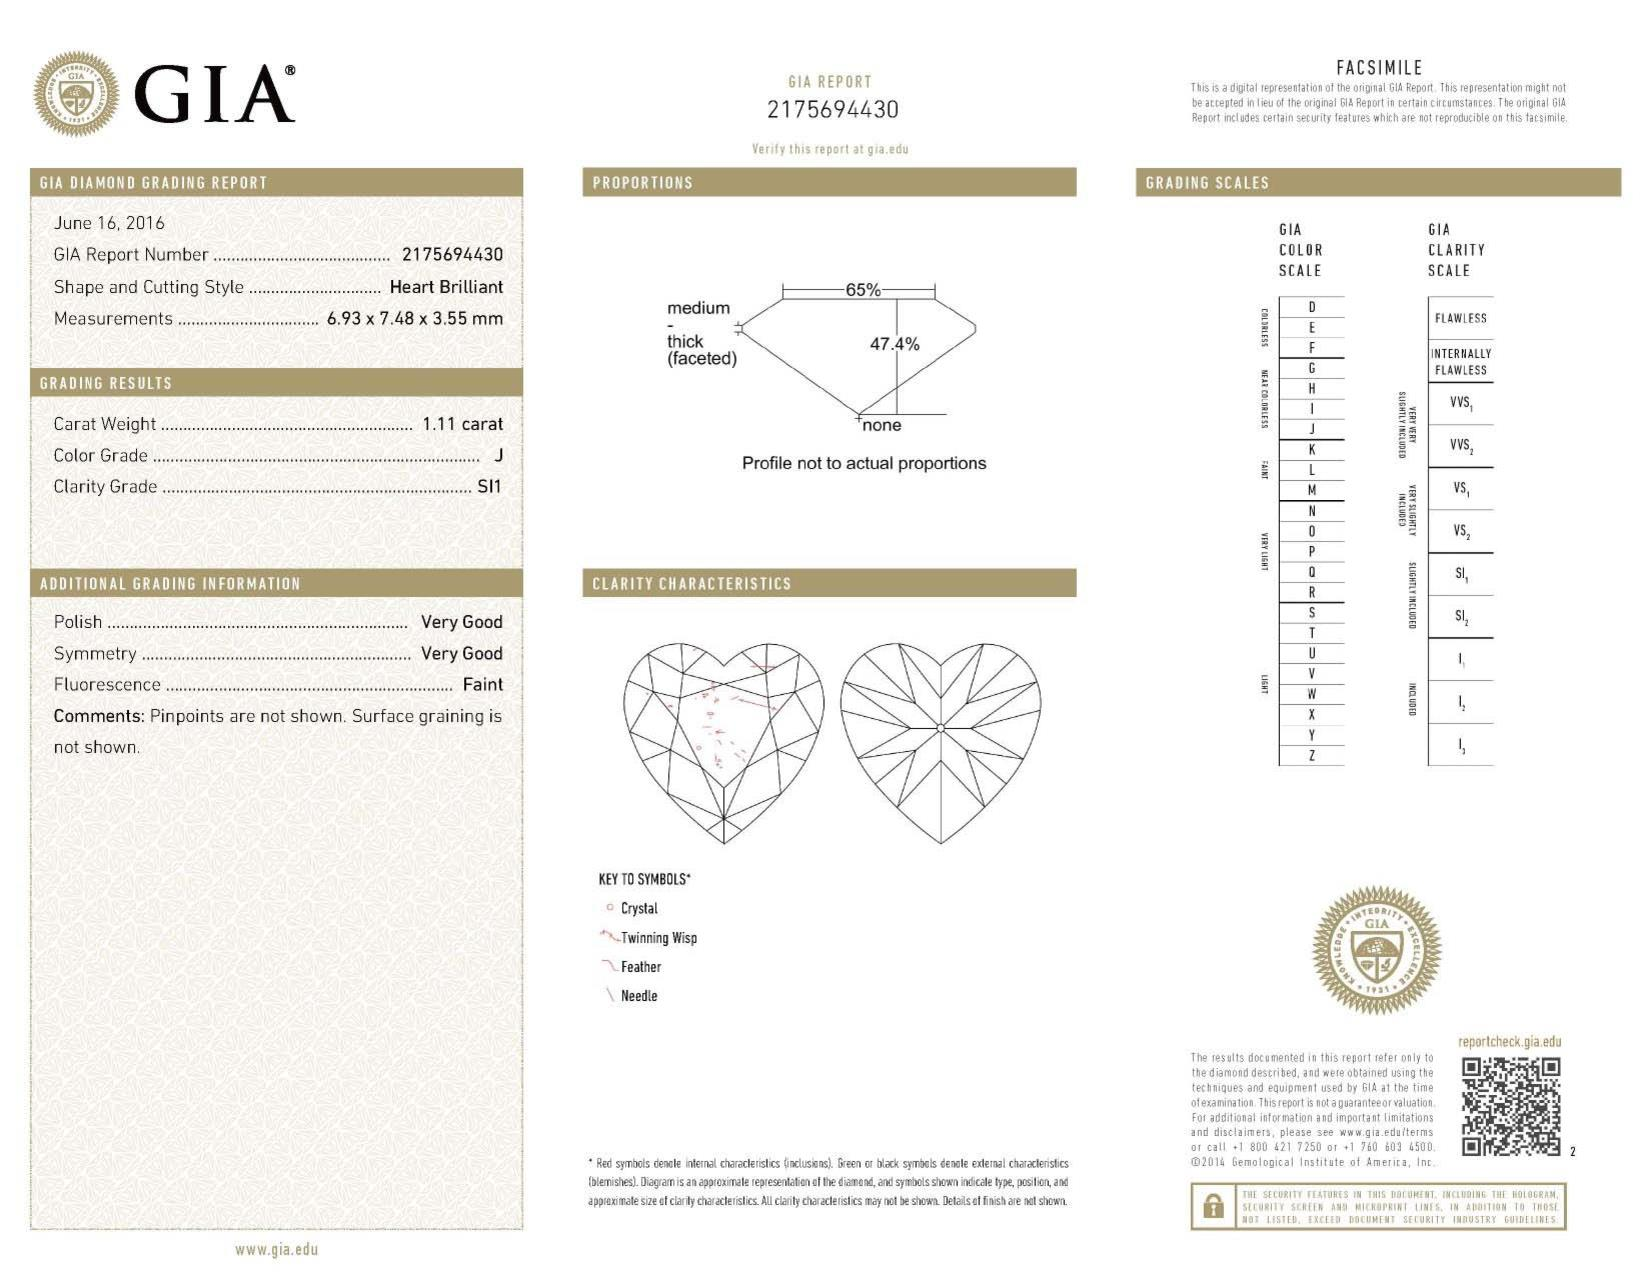 This is a 1.11 carat heart shape, J color, SI1 clarity natural diamond accompanied by a GIA grading report.